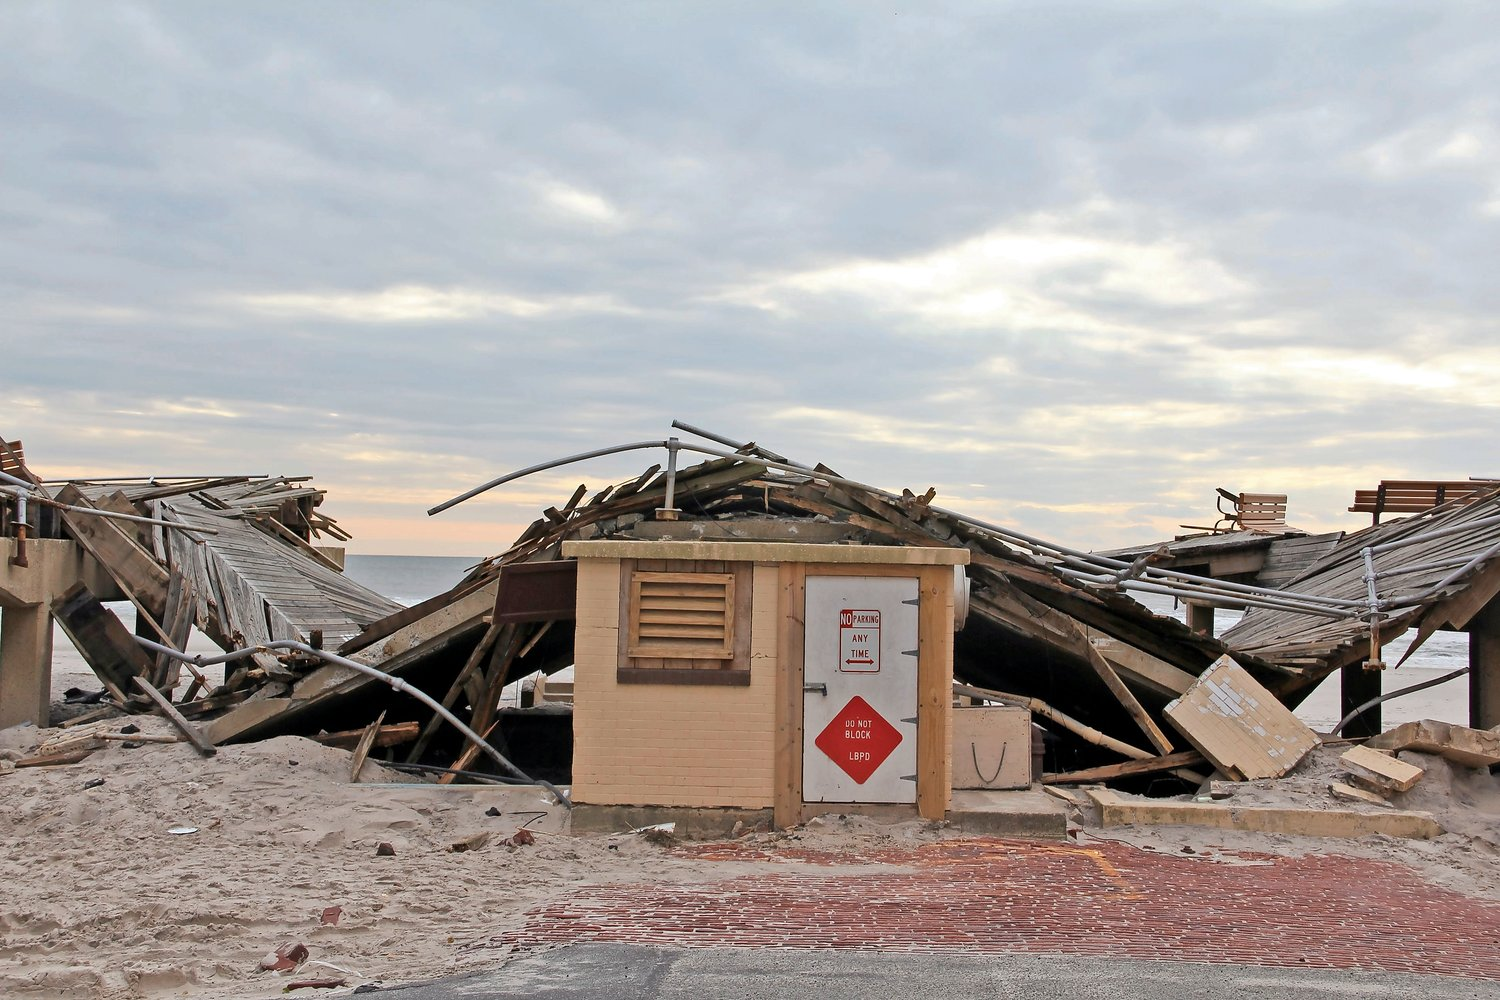 officials noted the city's recovery in the six years since Hurricane Sandy, including the reconstruction of the 2.2-mile boardwalk, pictured which was destroyed in the storm.